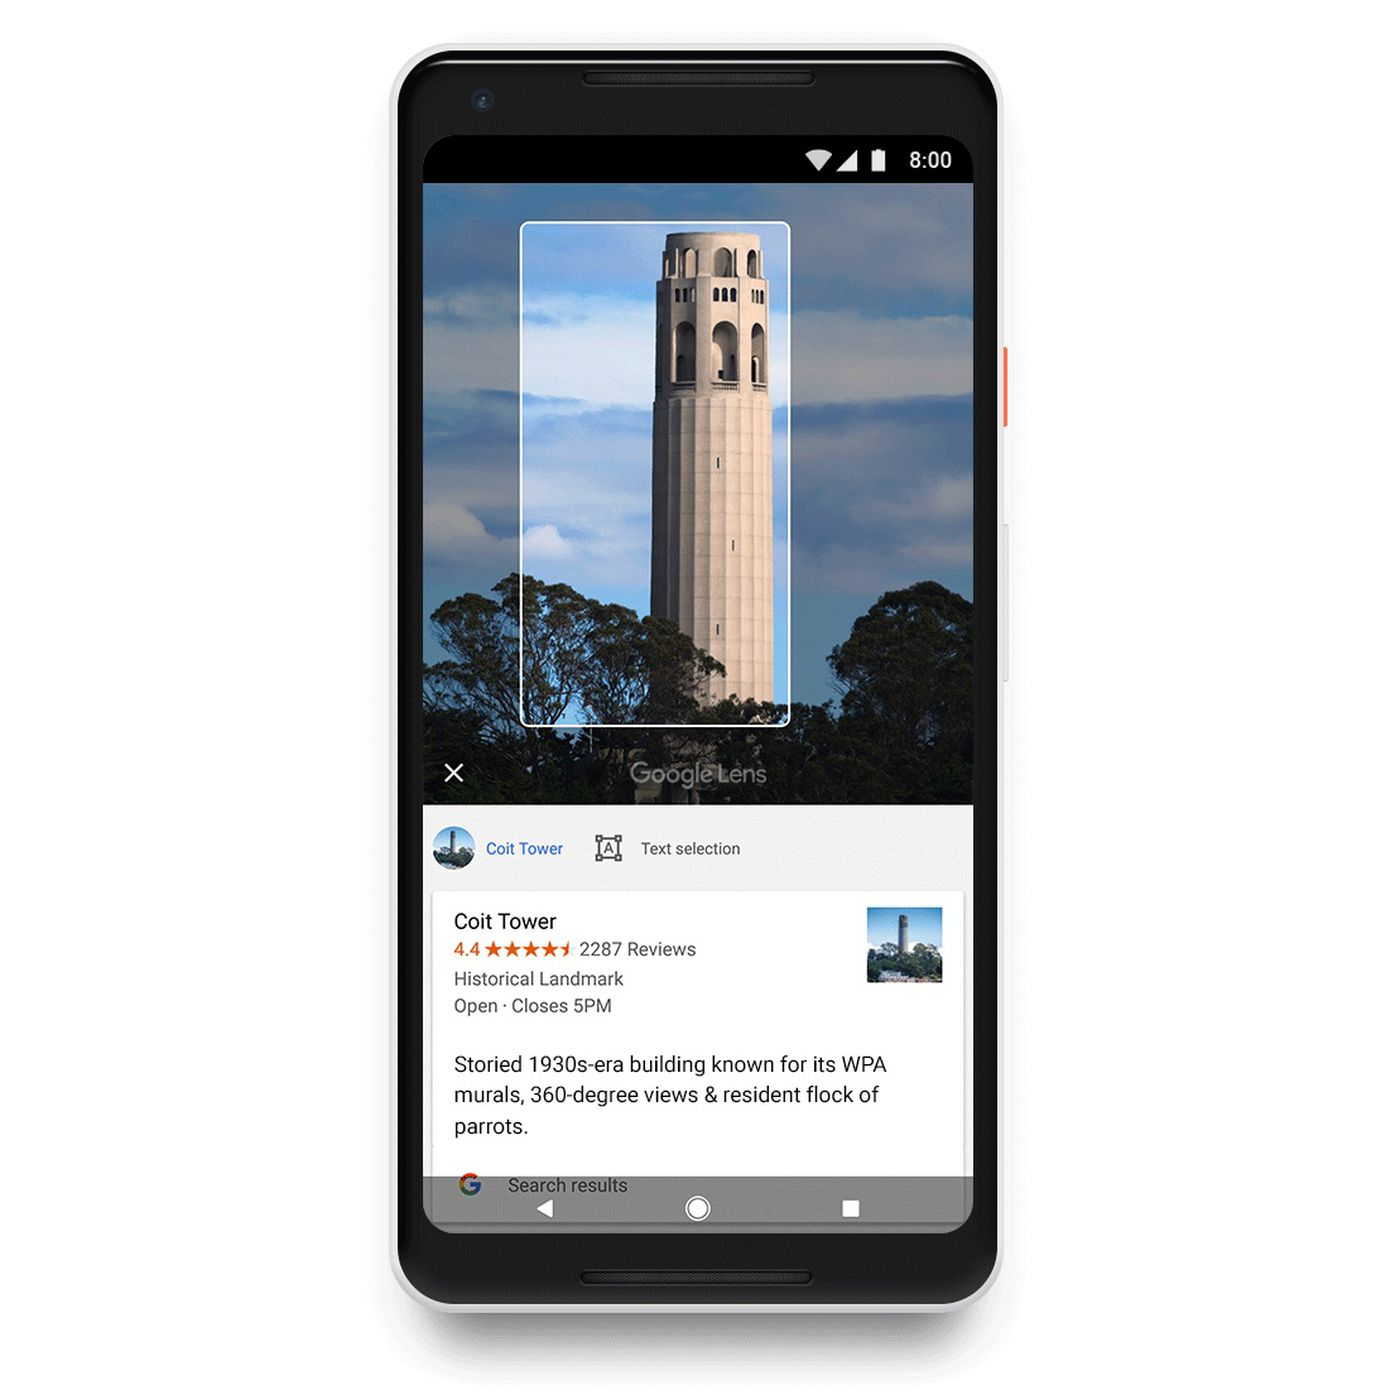 Google Lens is now available on iOS - The Verge